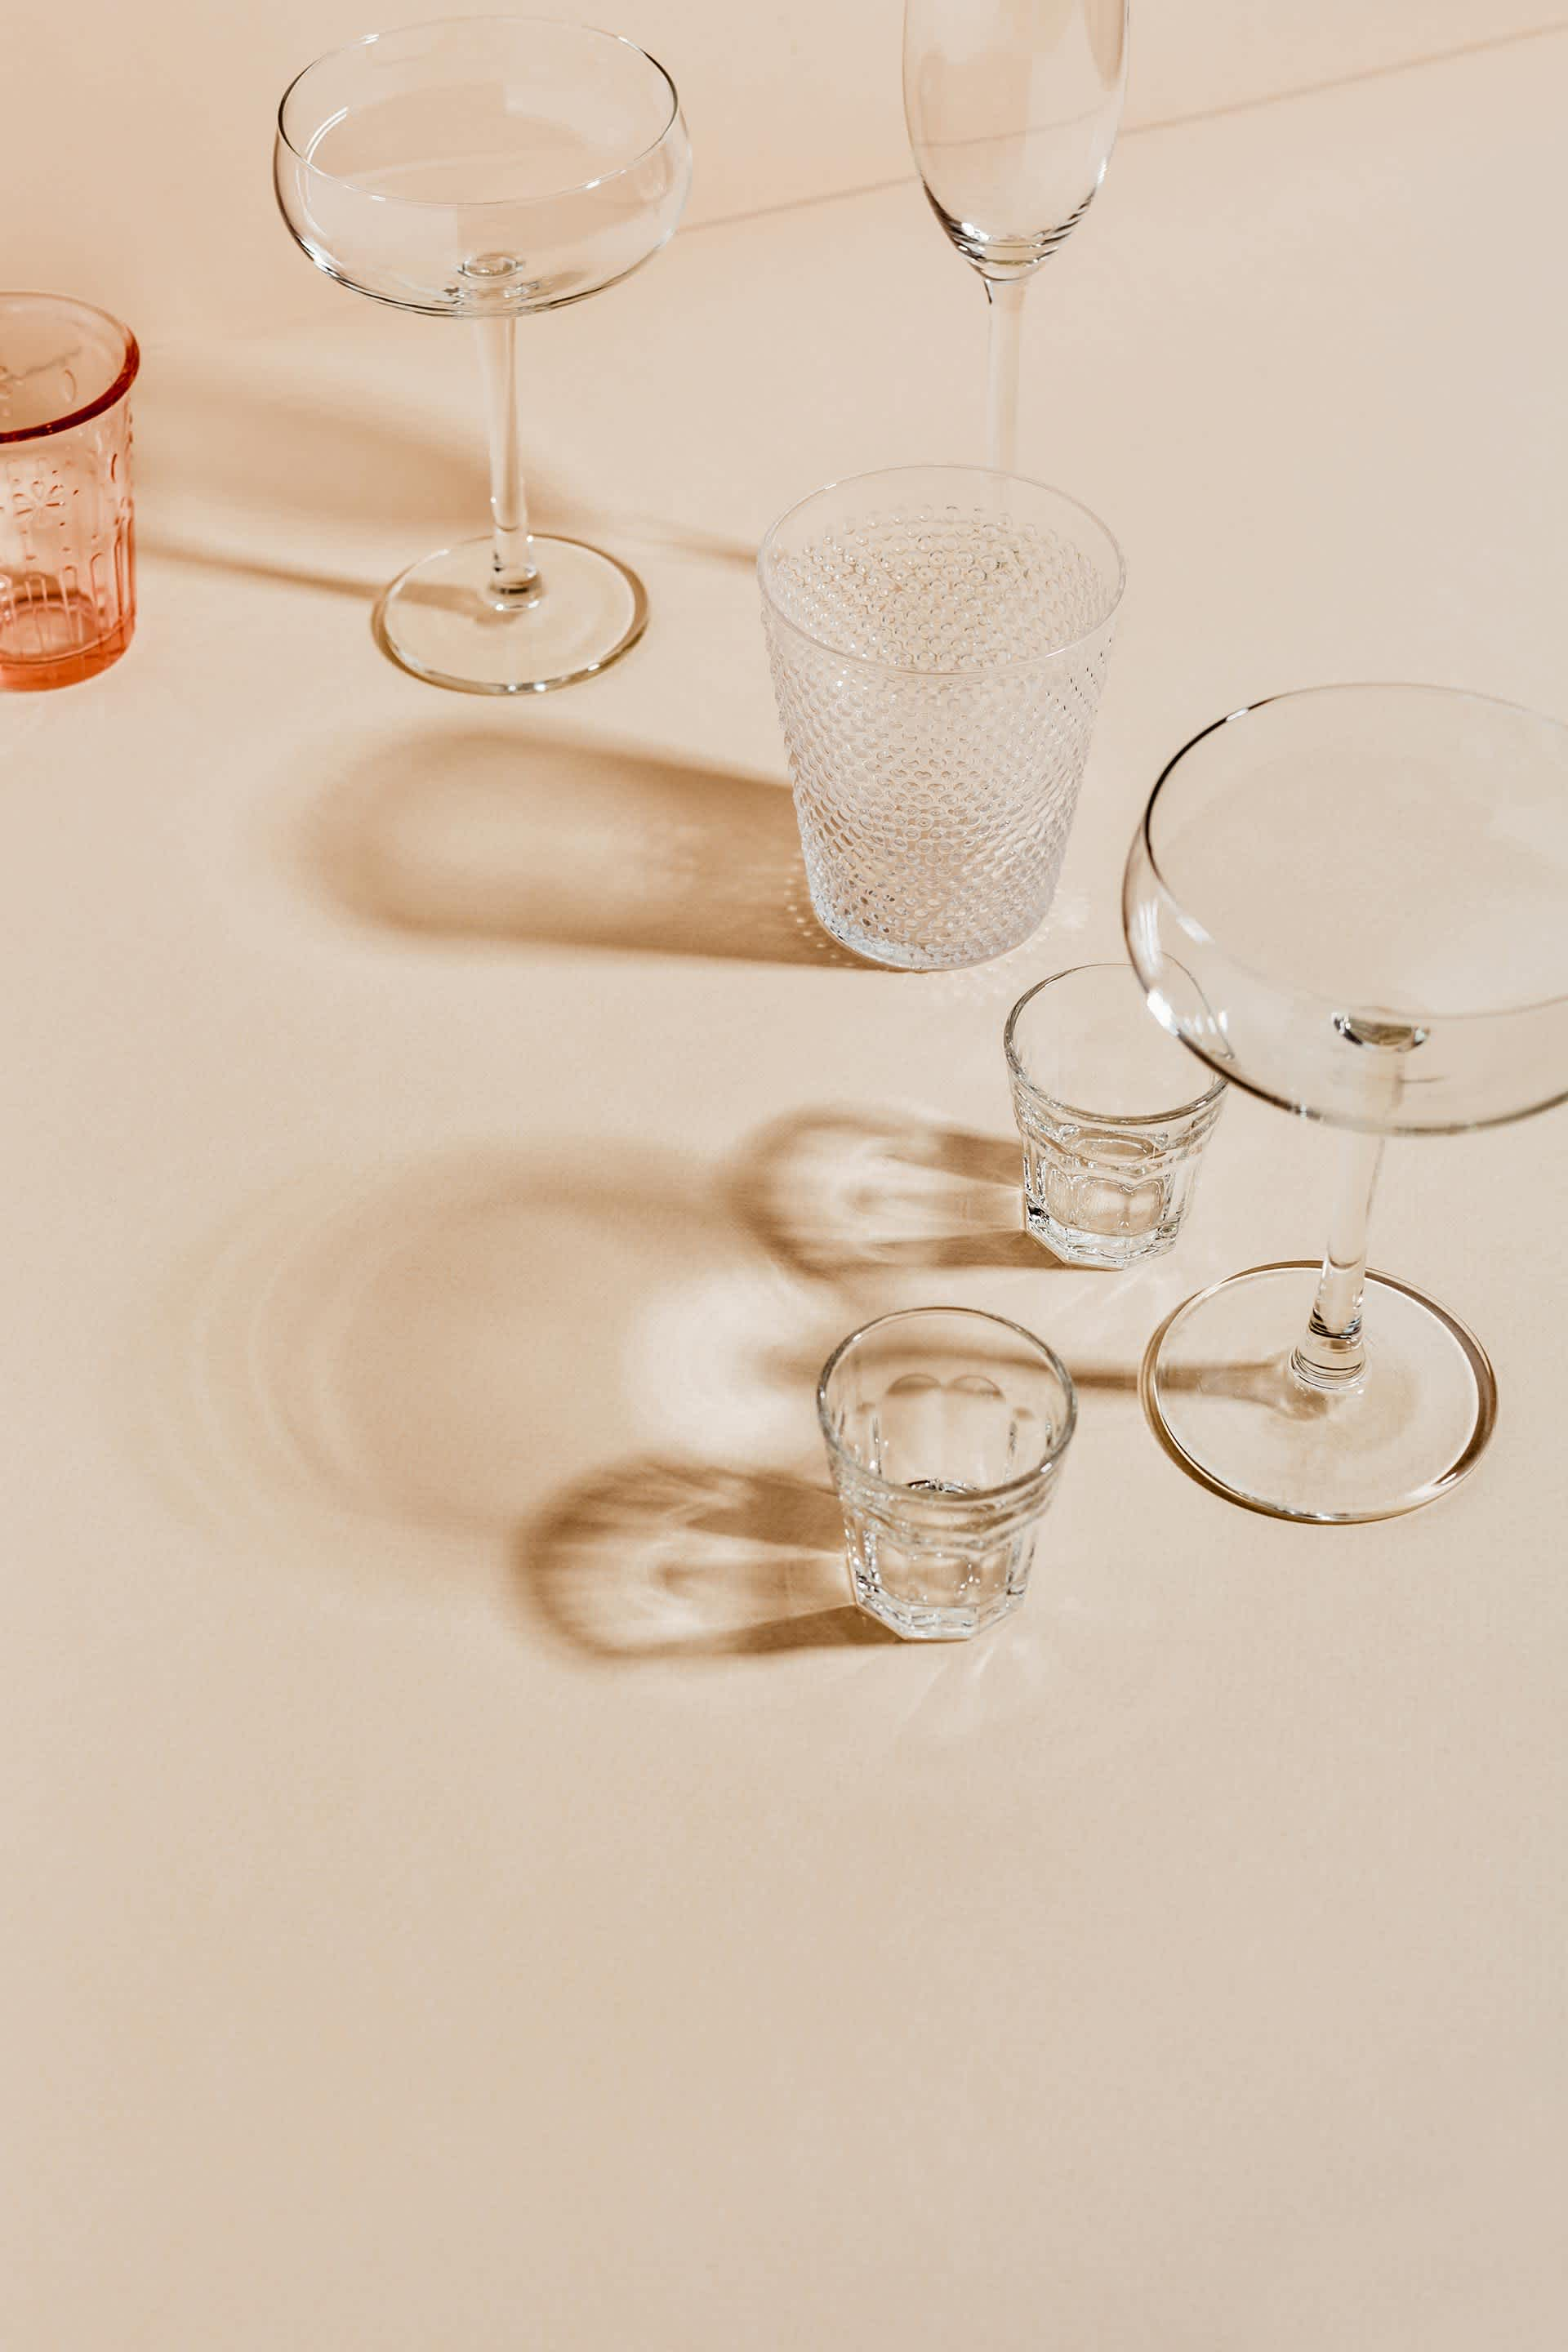 Various sizes and types of drinking glasses on a pink background